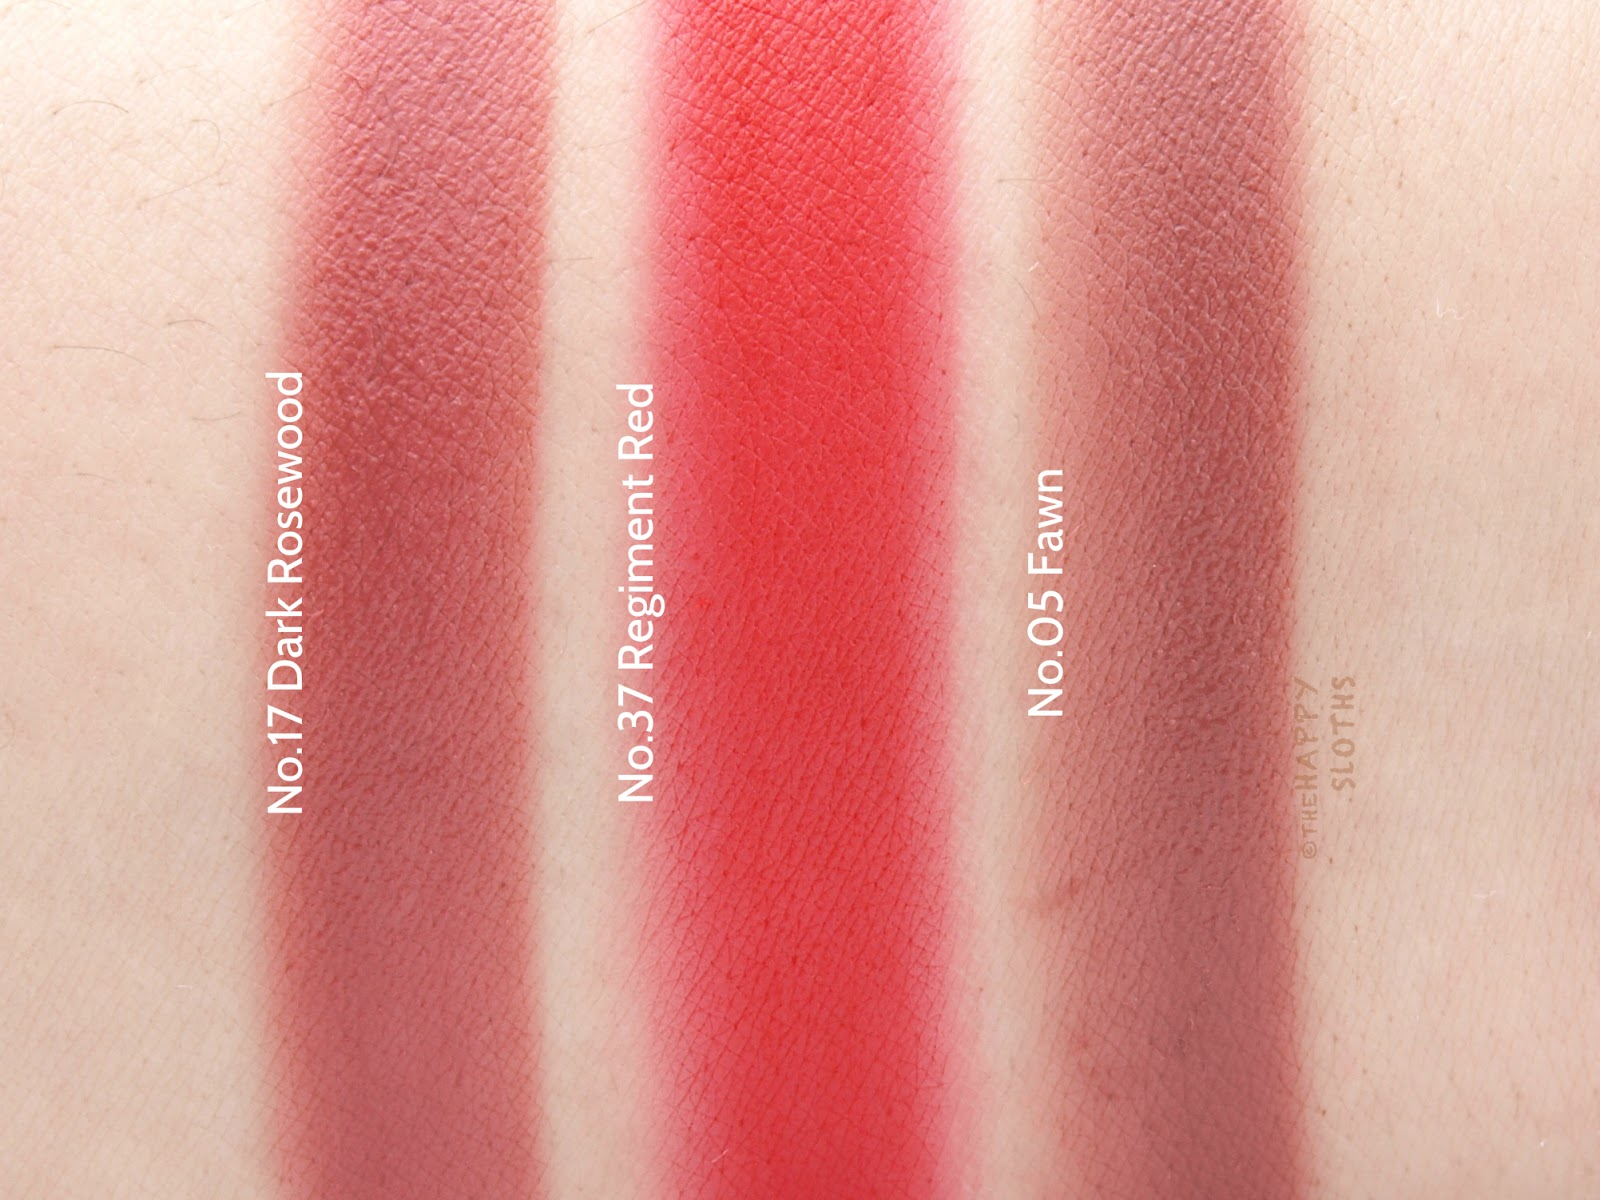 Burberry Liquid Lip Velvet: Review and Swatches Dark Rosewood Regiment Red Fawn